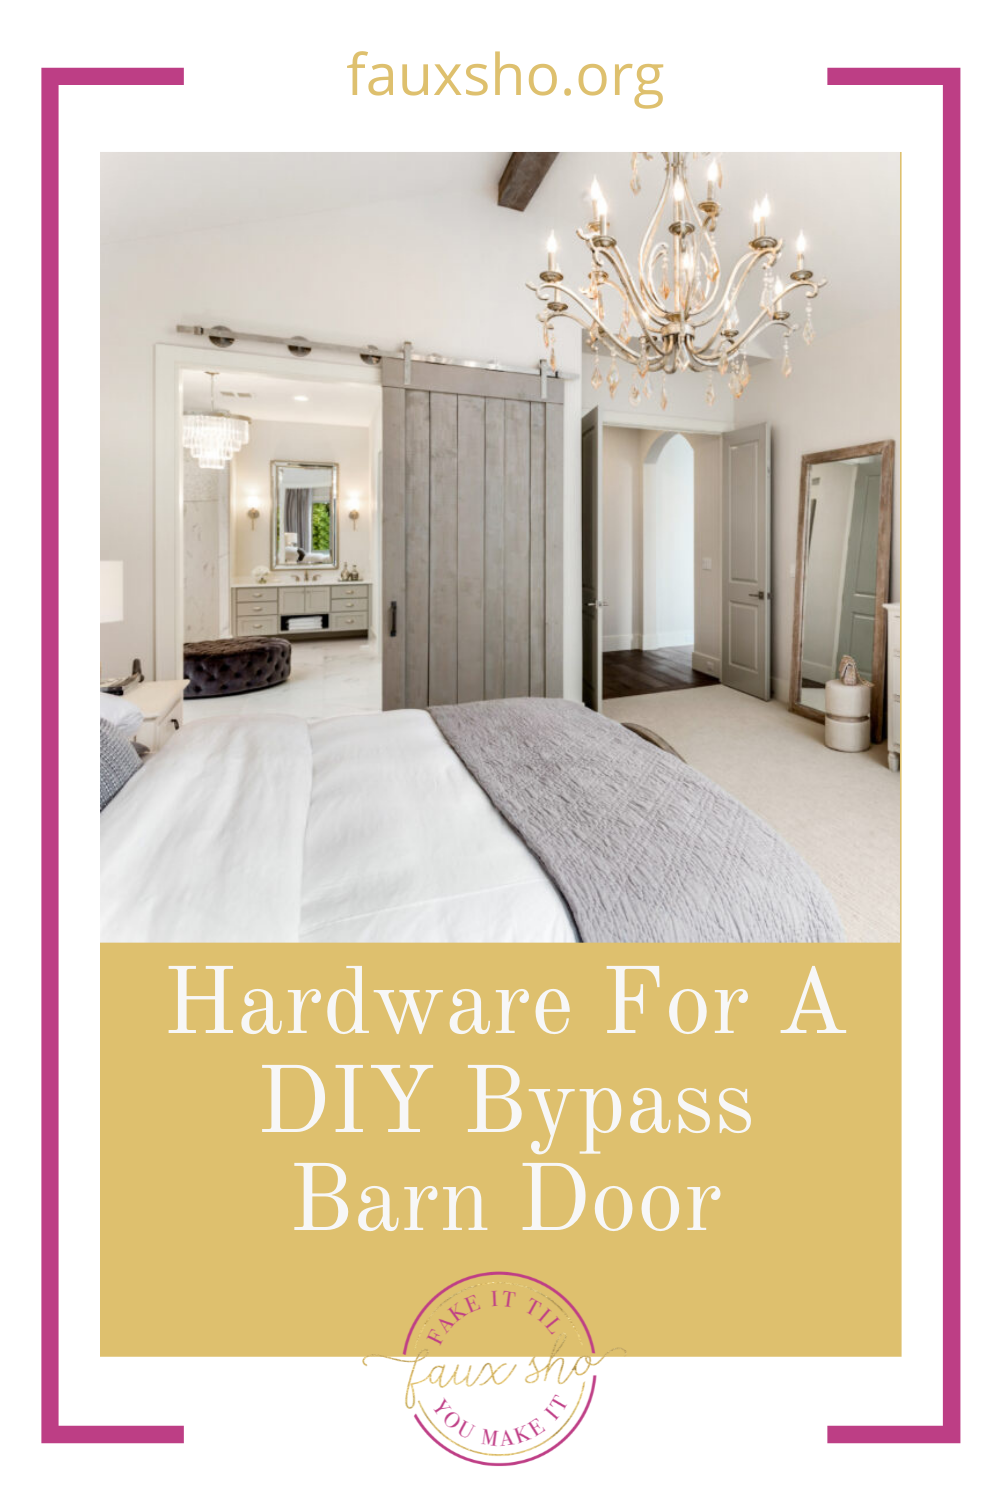 Fauxsho.org is loaded with DIY ideas for crafters of all skill levels and abilities! Transform your space into something unique and personal. Find out what hardware you need for a DIY bypass barn door!